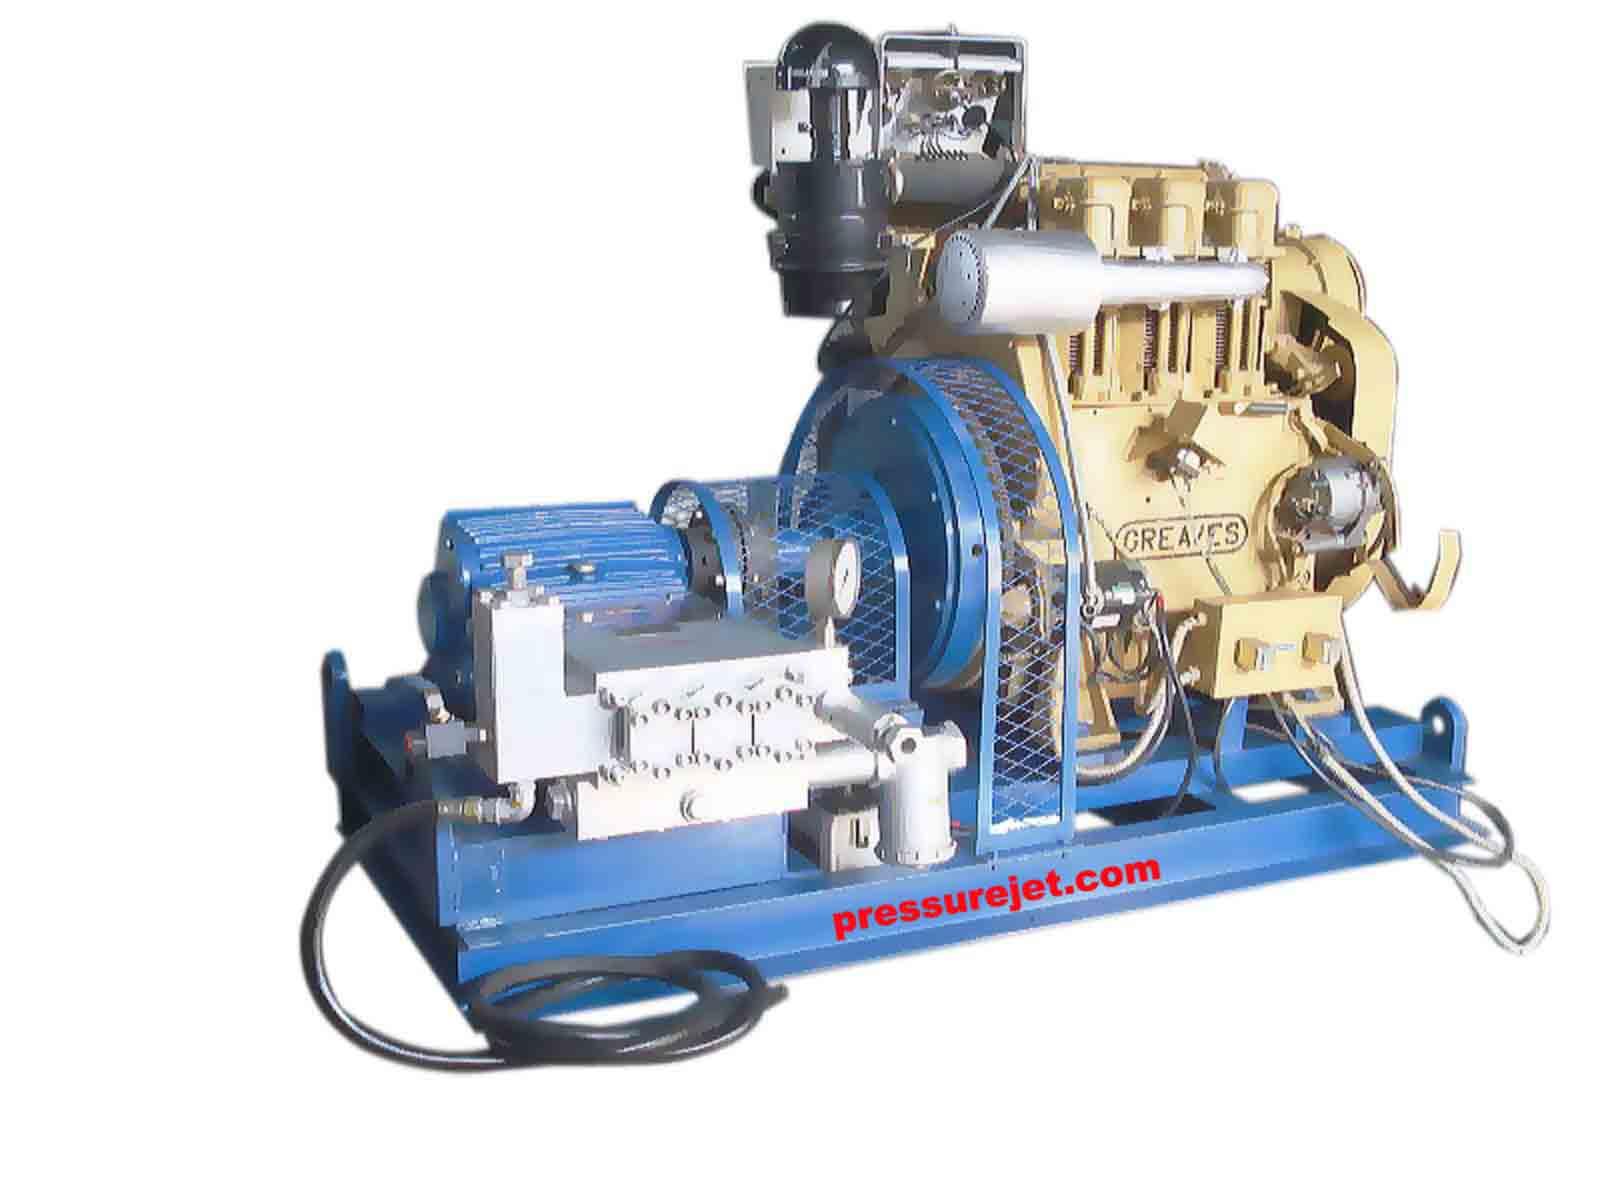 Hydrostatic Test Pumps, Hydrostatic Hydrotest System - PressureJet